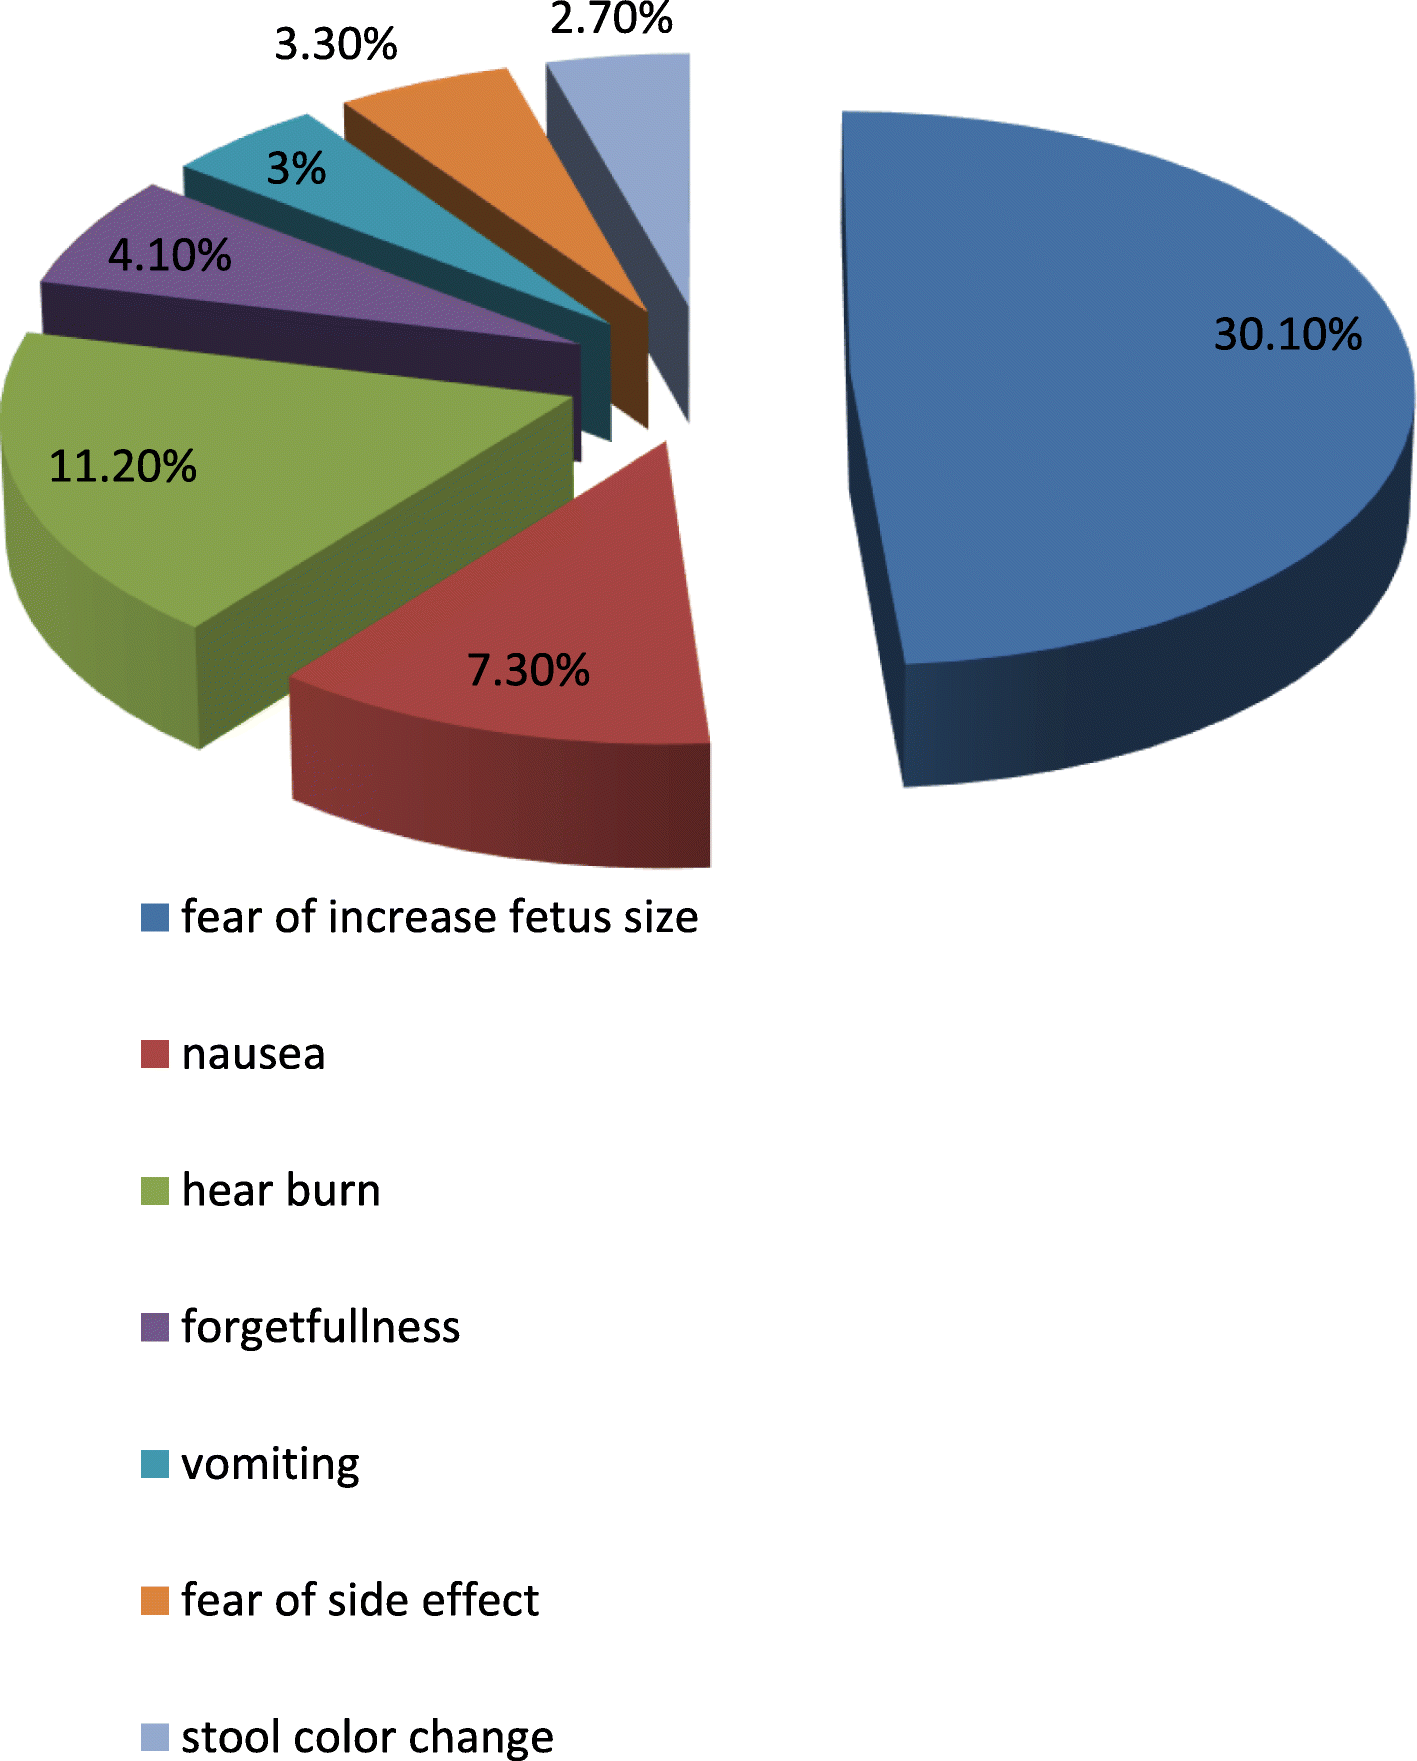 Compliance with iron folic acid and associated factors among